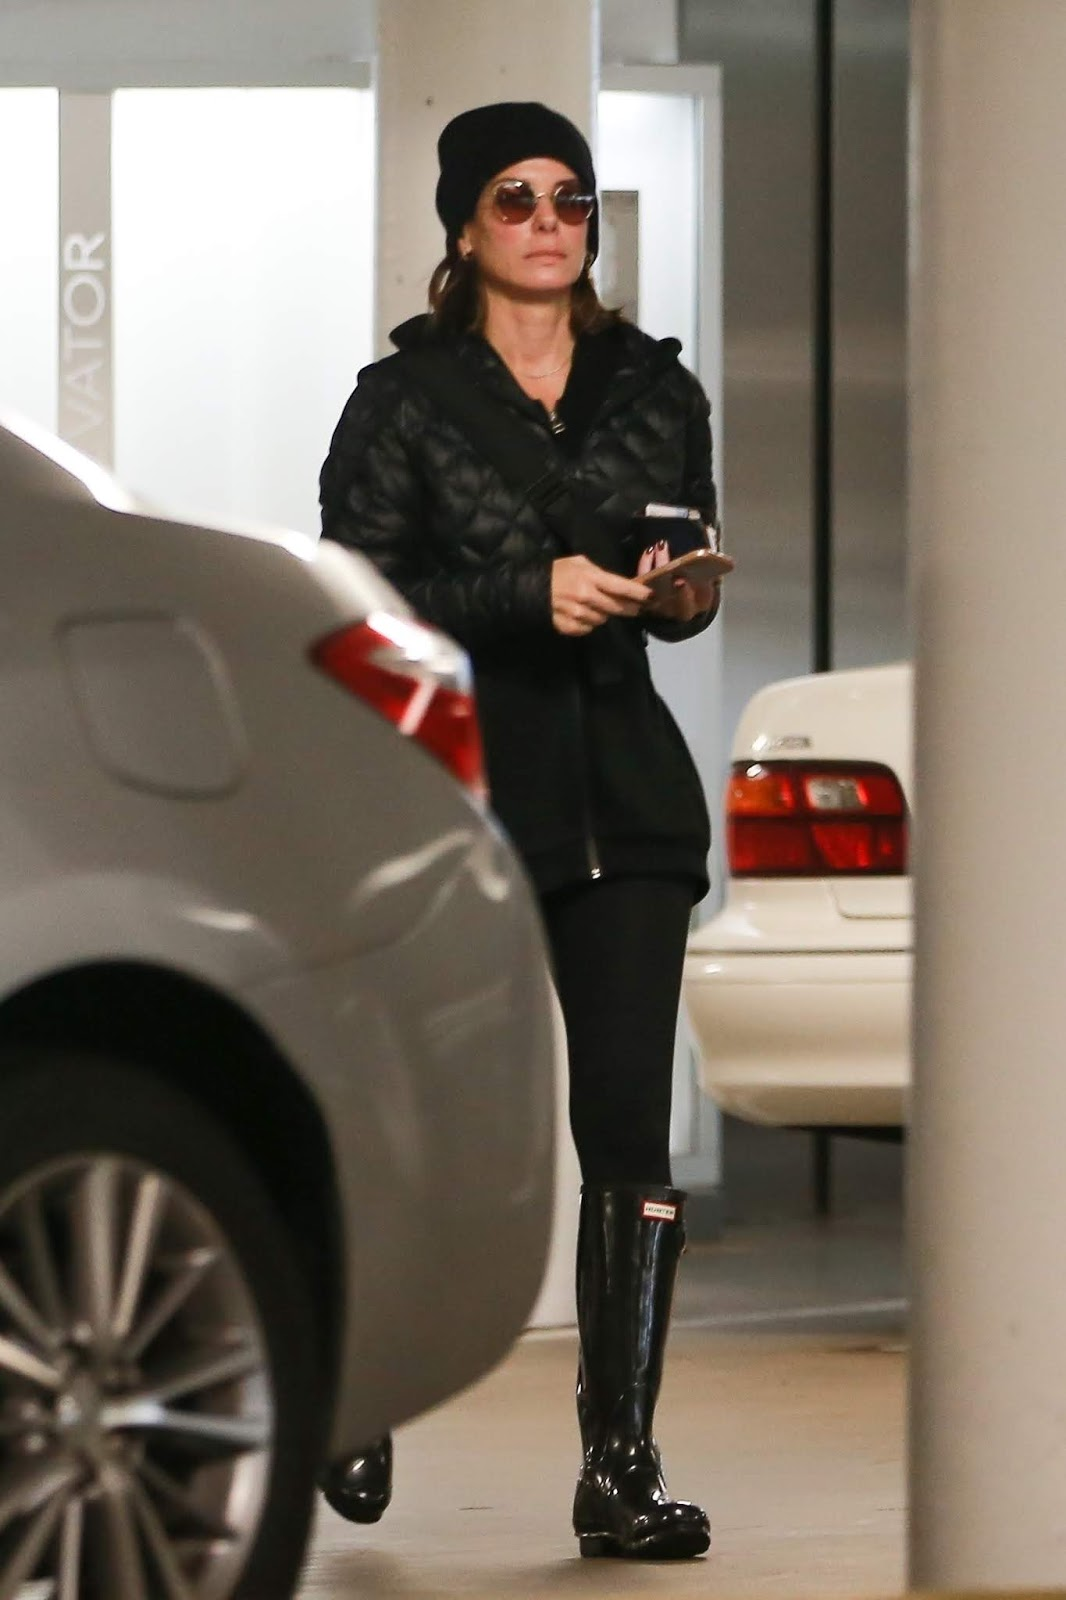 Sandra Bullock heads to a rainy day meeting in Los Angeles - 01/15/2019